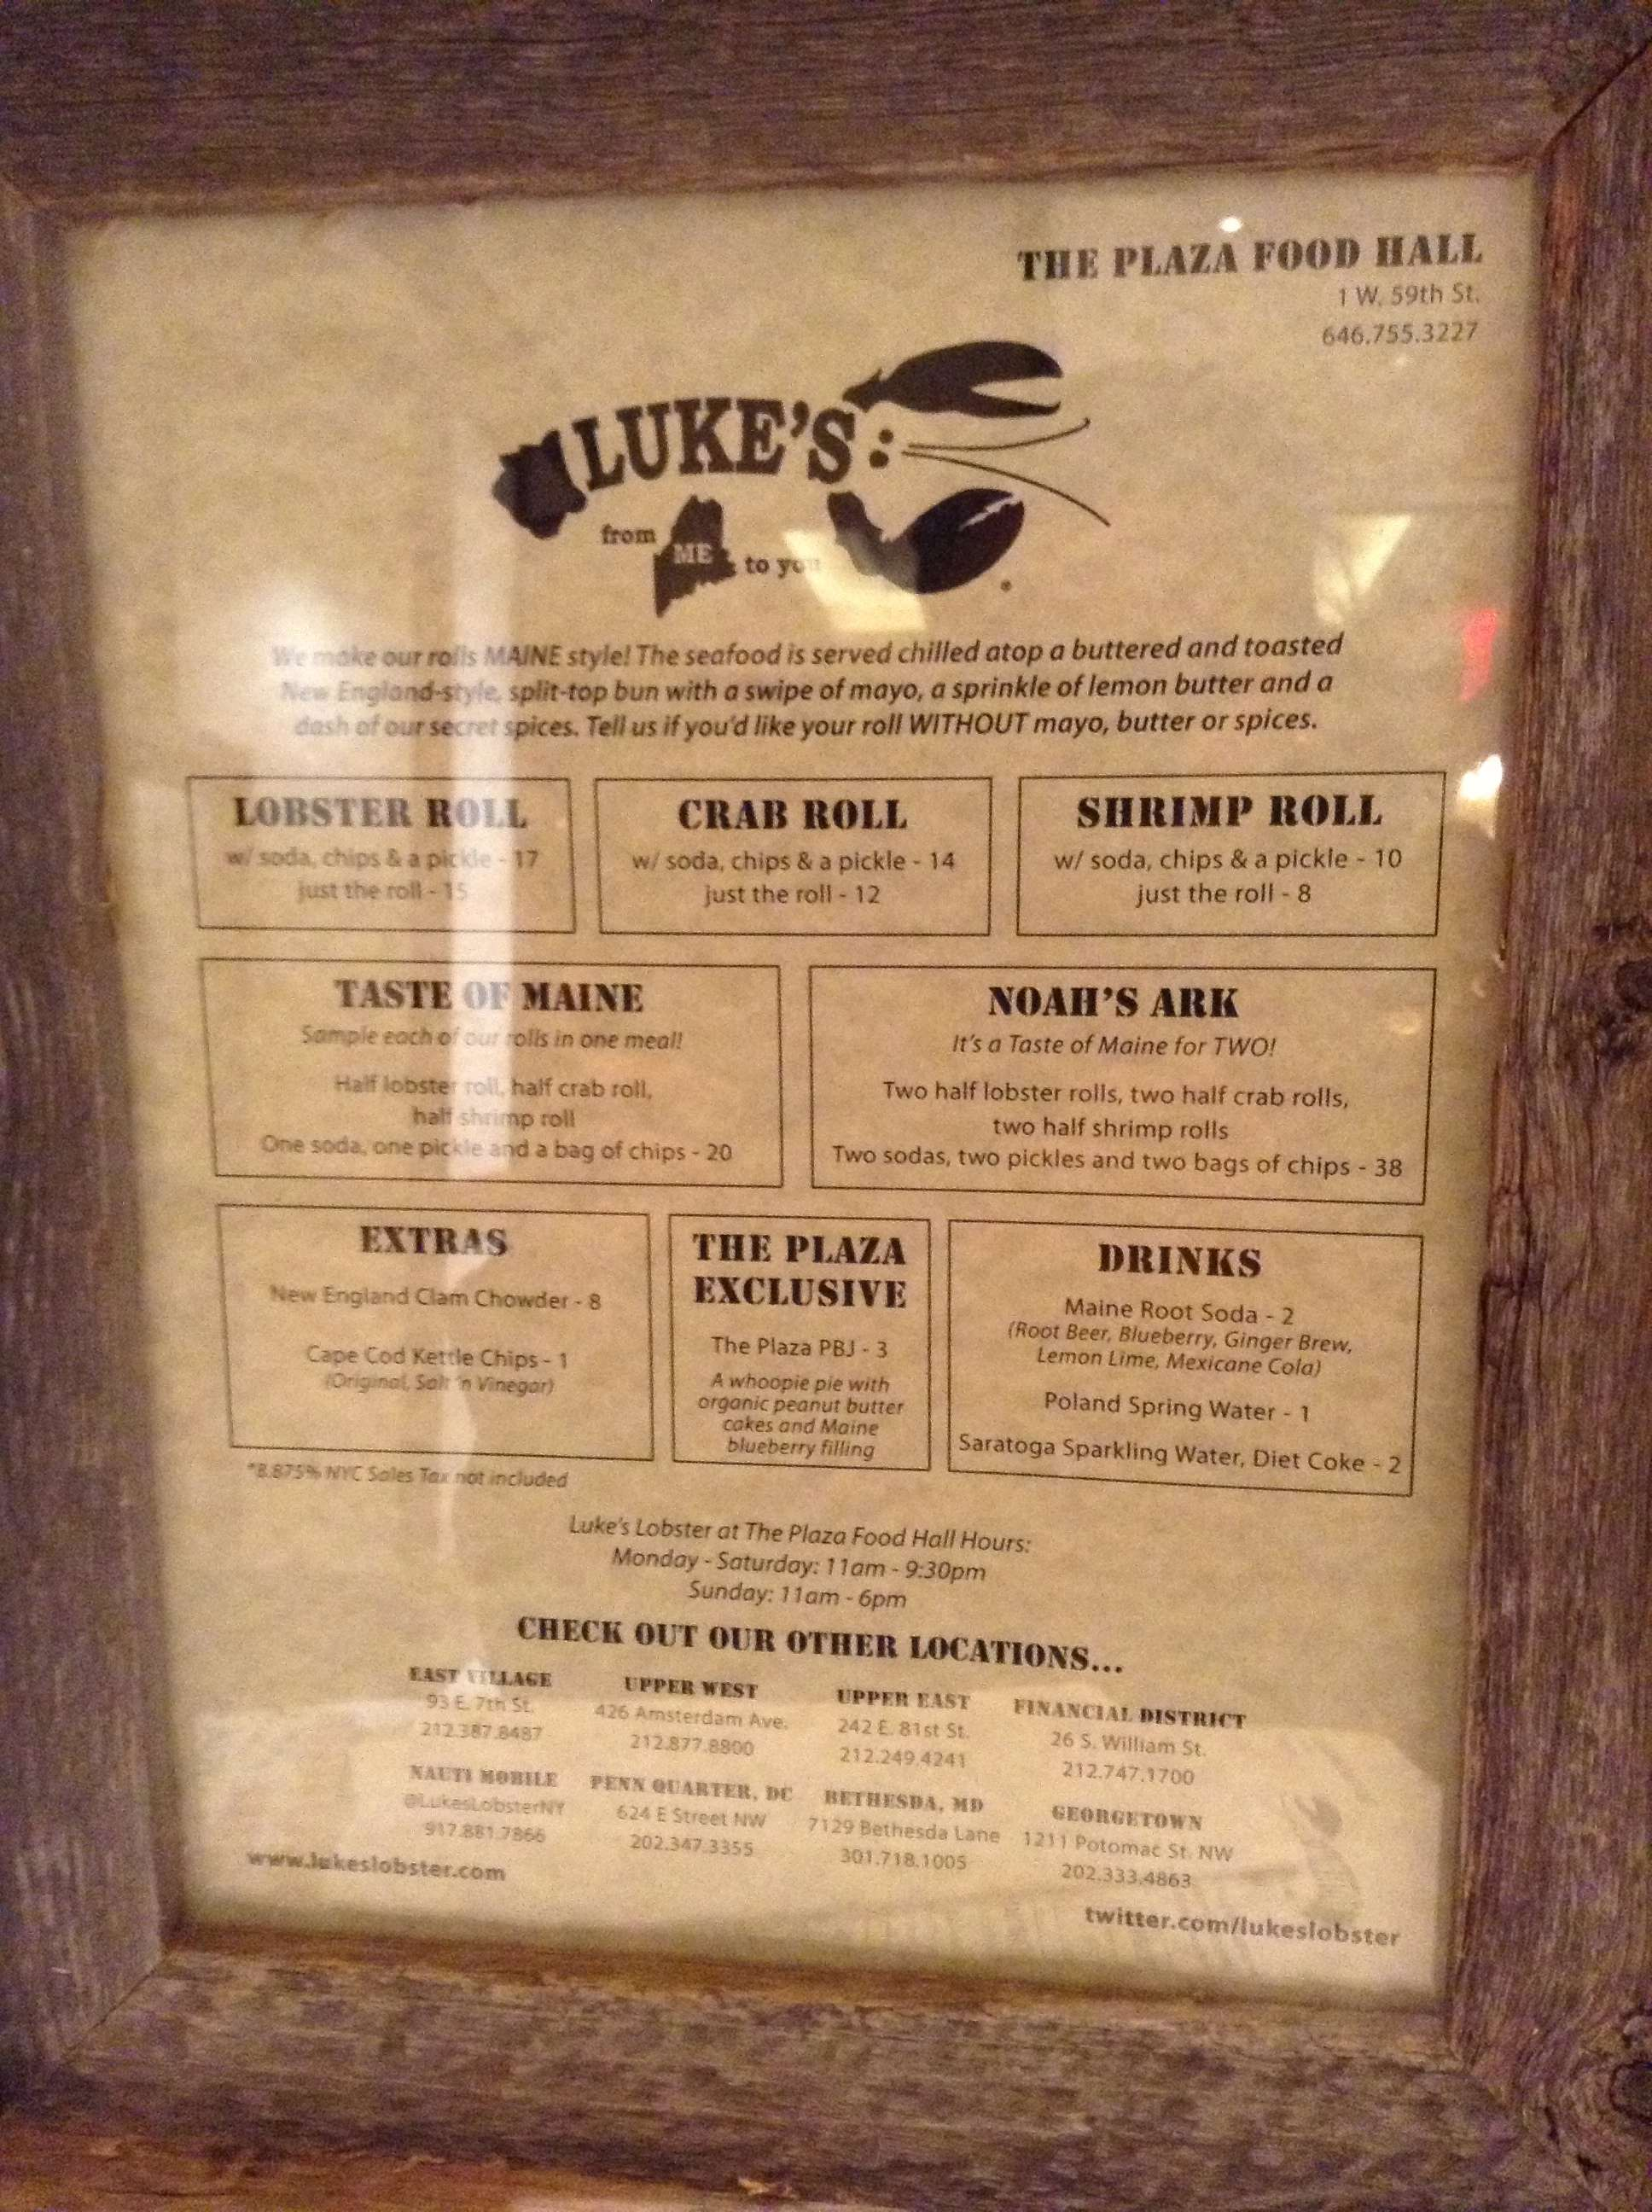 Lukes-Lobster-New-York-2 Mon avis sur le hot dog au homard de Luke's Lobster New York